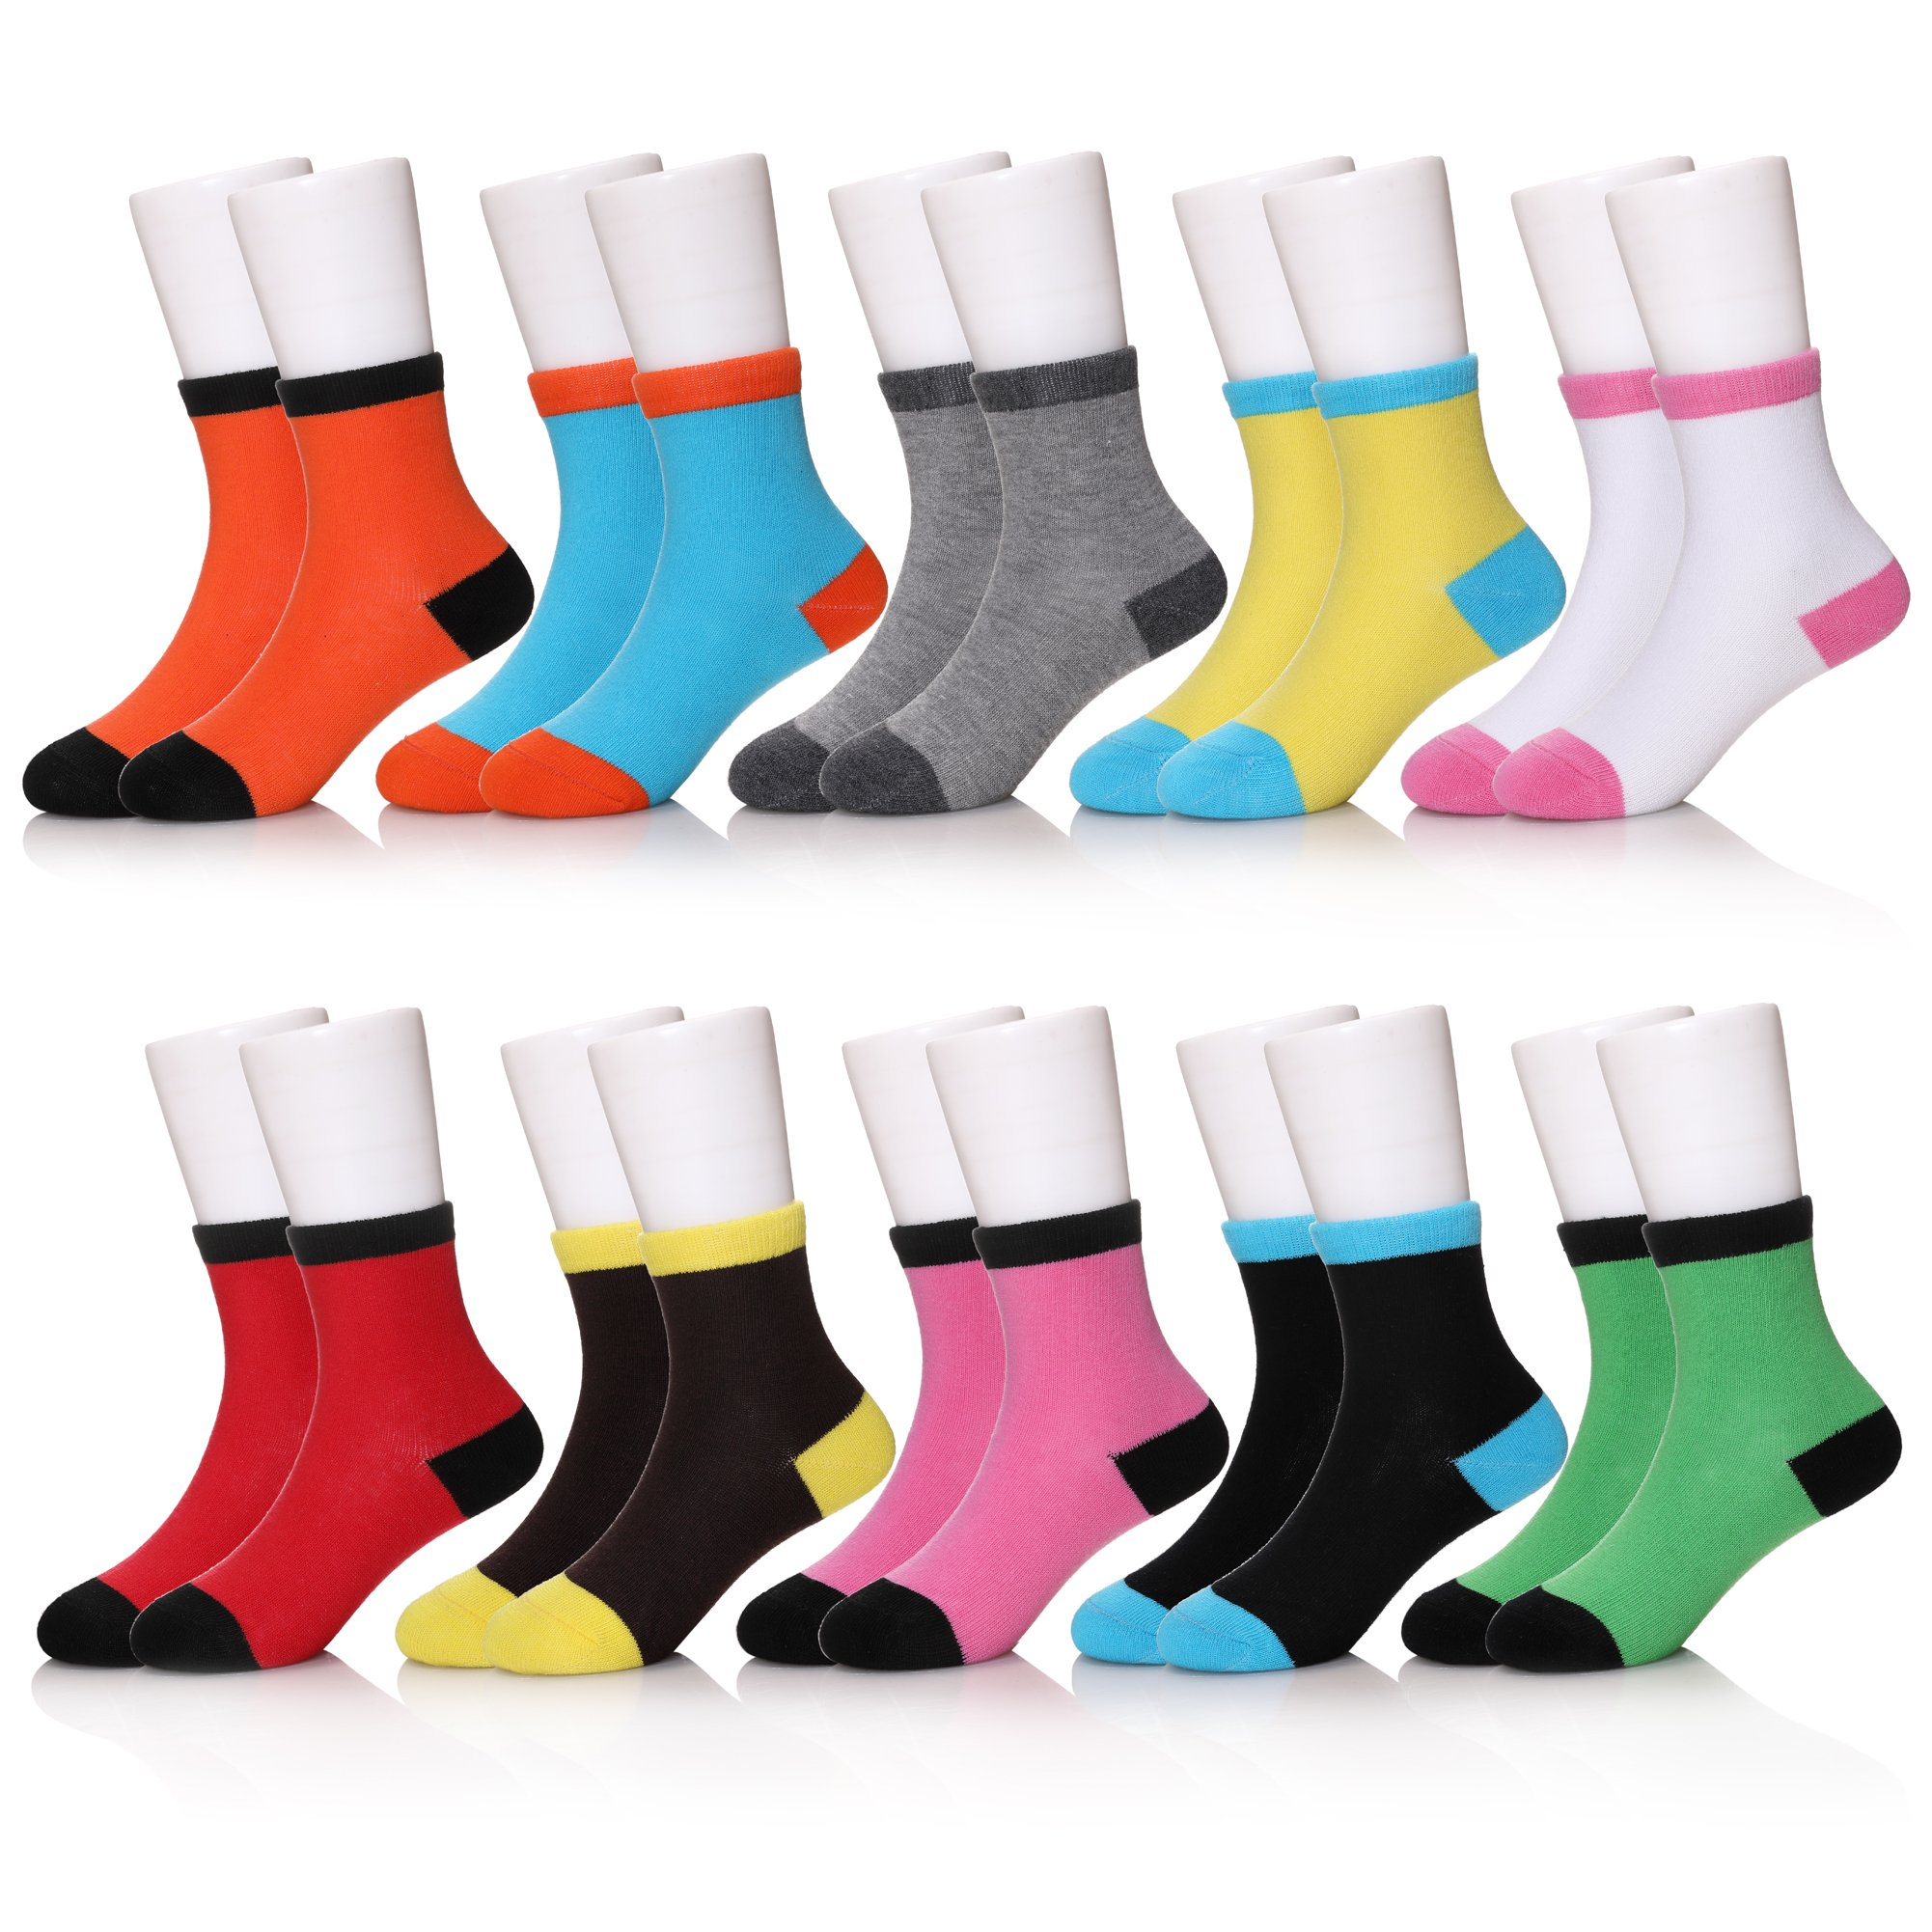 SEEYAN 10 Pairs Kids Baby Boys Girls Casual Colorful Cotton Breathable Warm Soft Crew Socks (10 Pairs Colorful, 4-6 Years)